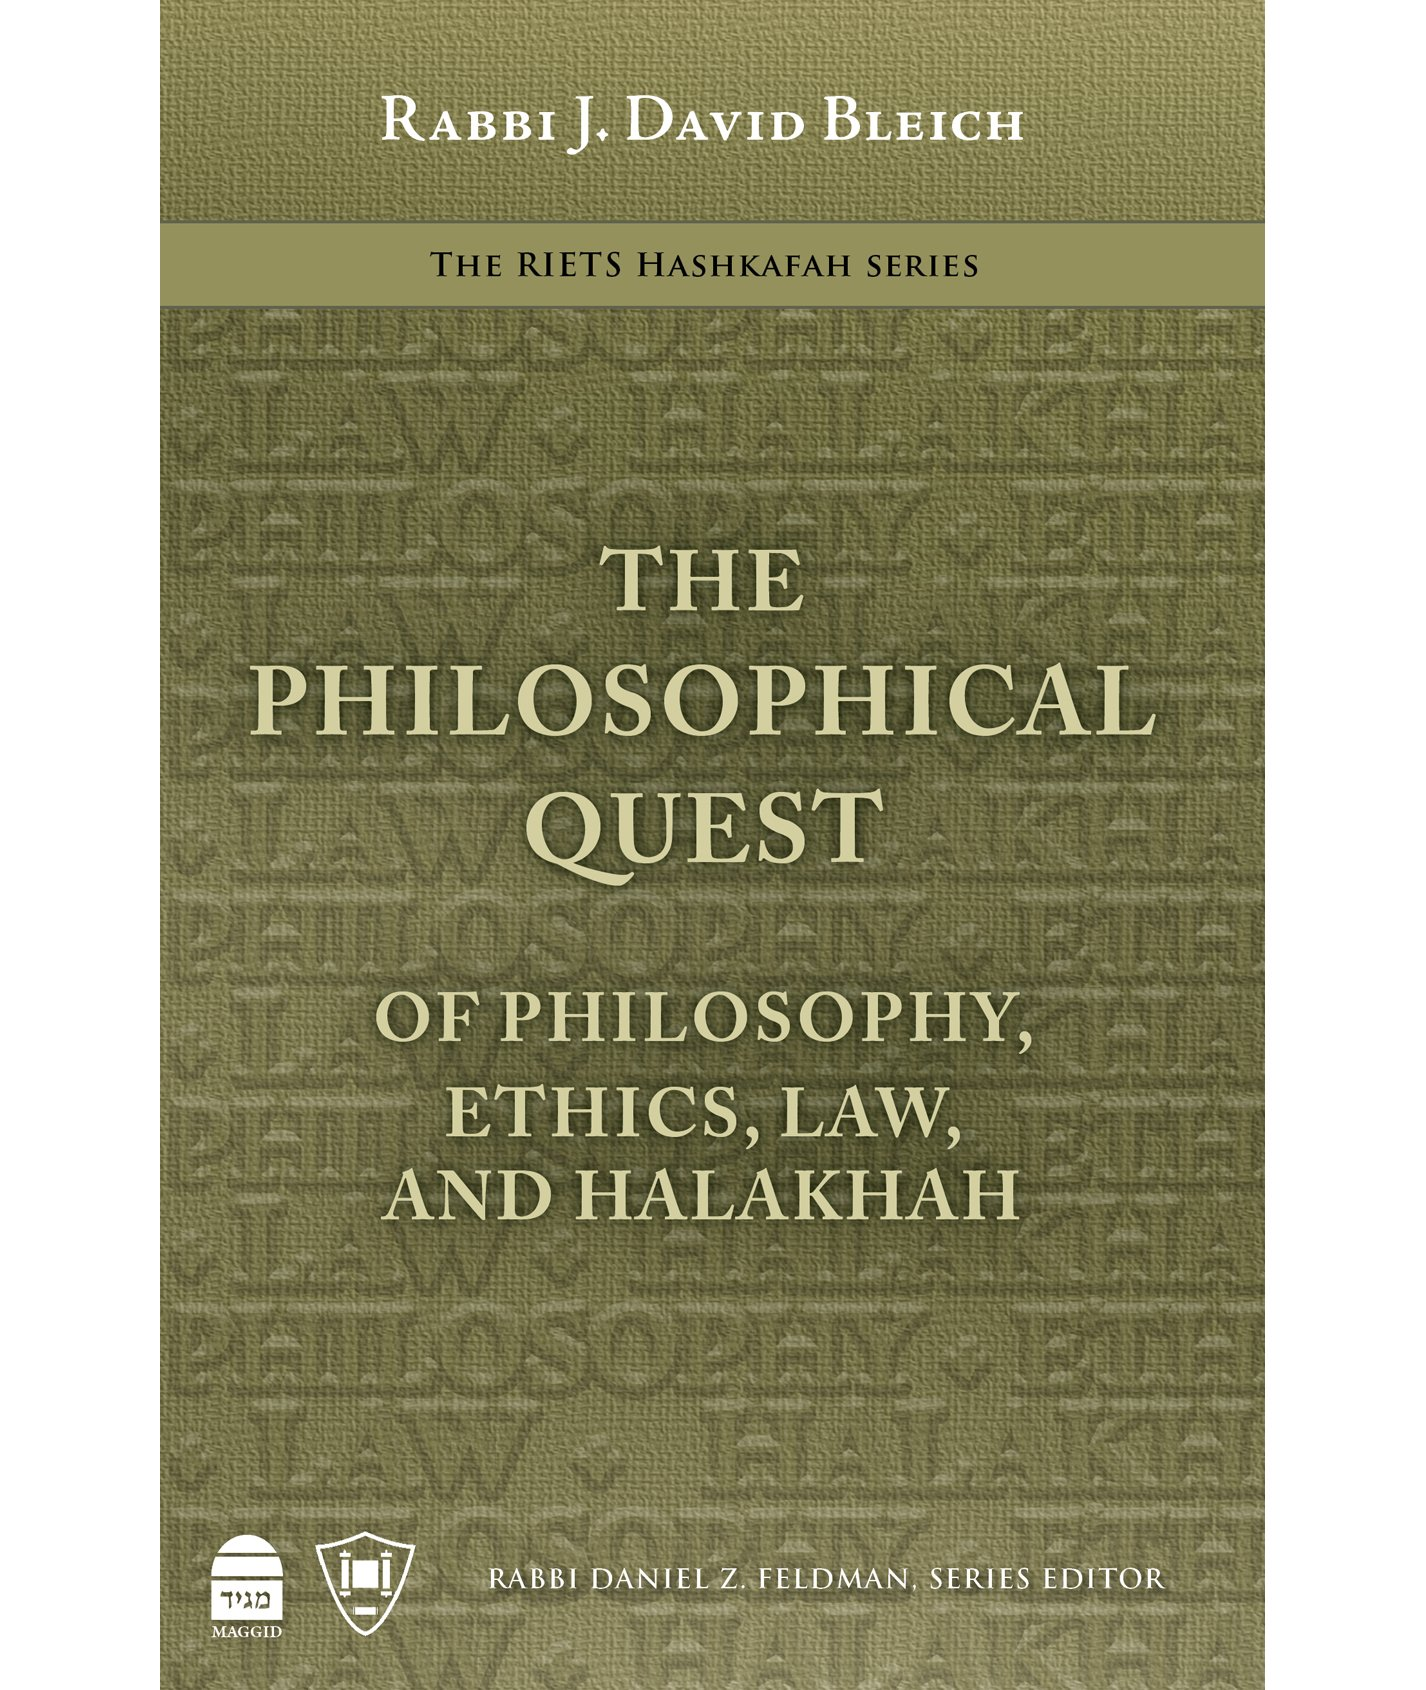 The Philosophical Quest: Of Philosophy, Ethics, Law and Halakhah pdf